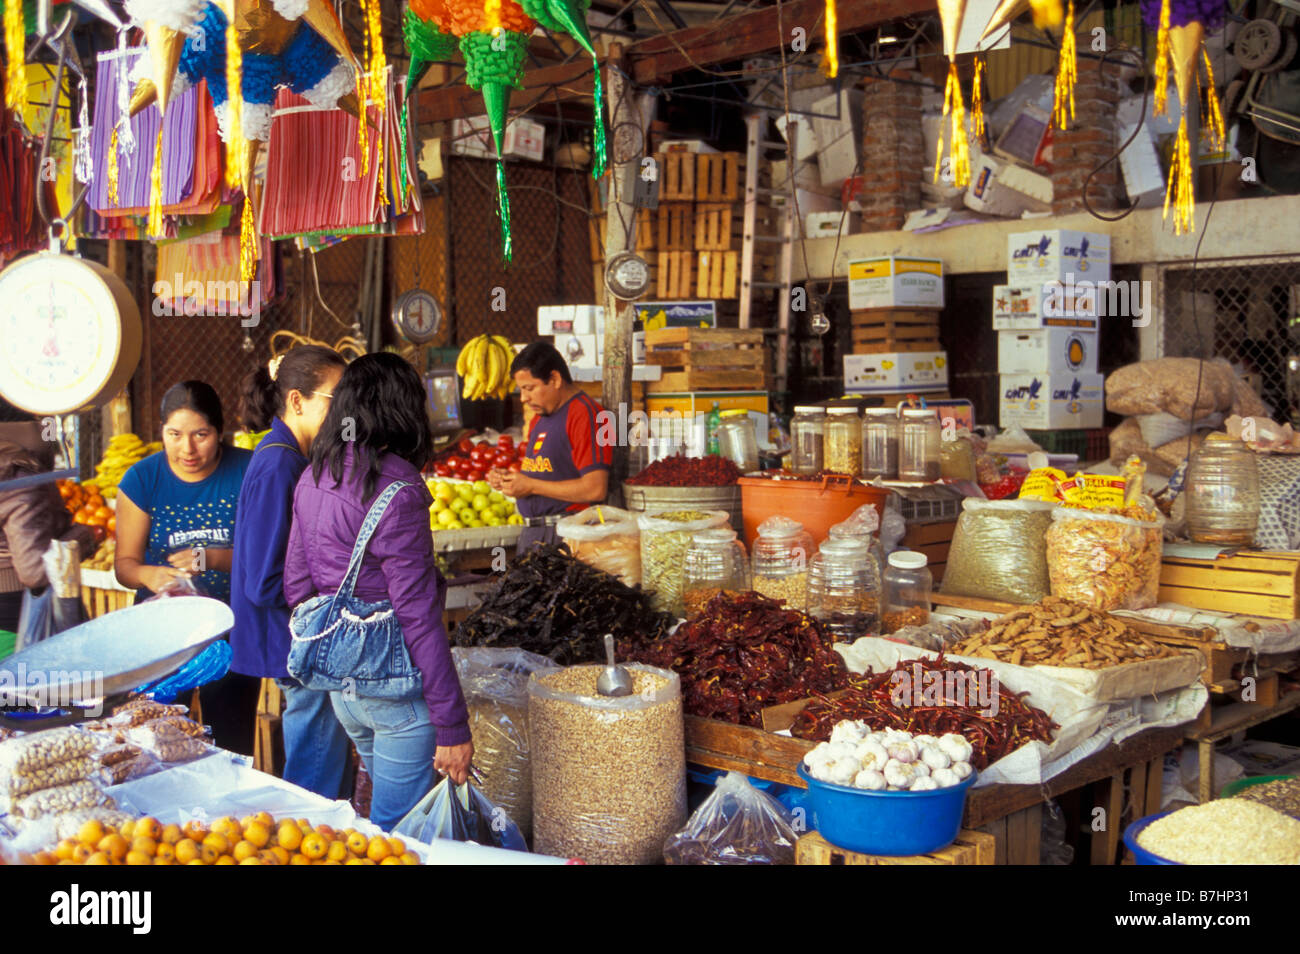 Mexican women shopping at the vegetable market in Zamora Michoacan Mexico - Stock Image